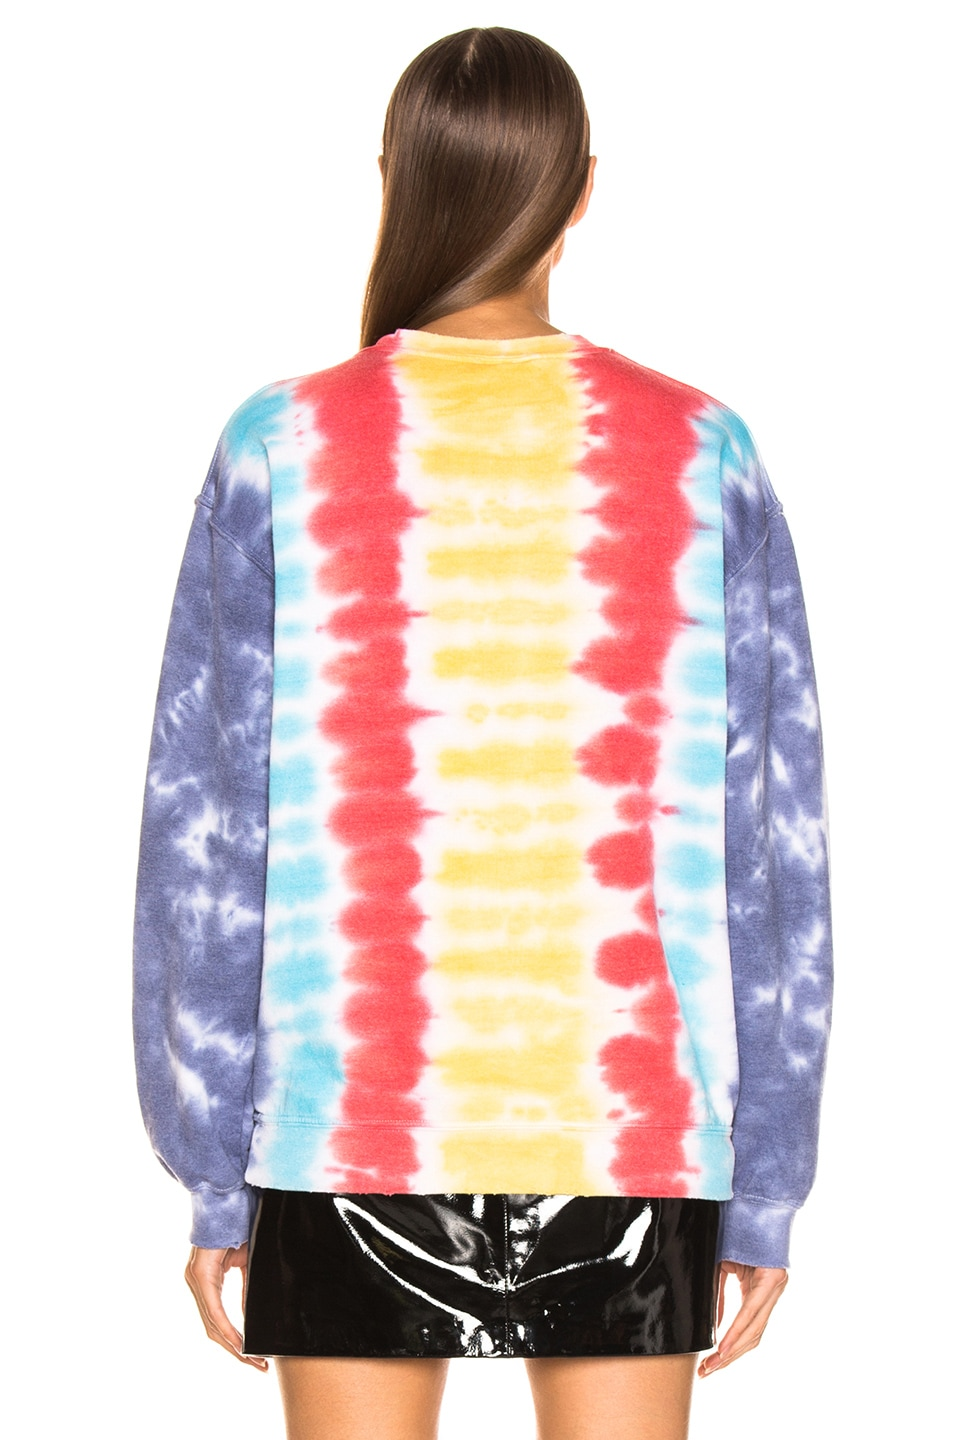 Image 4 of Madeworn Stoned Sweatshirt in Tie Dye